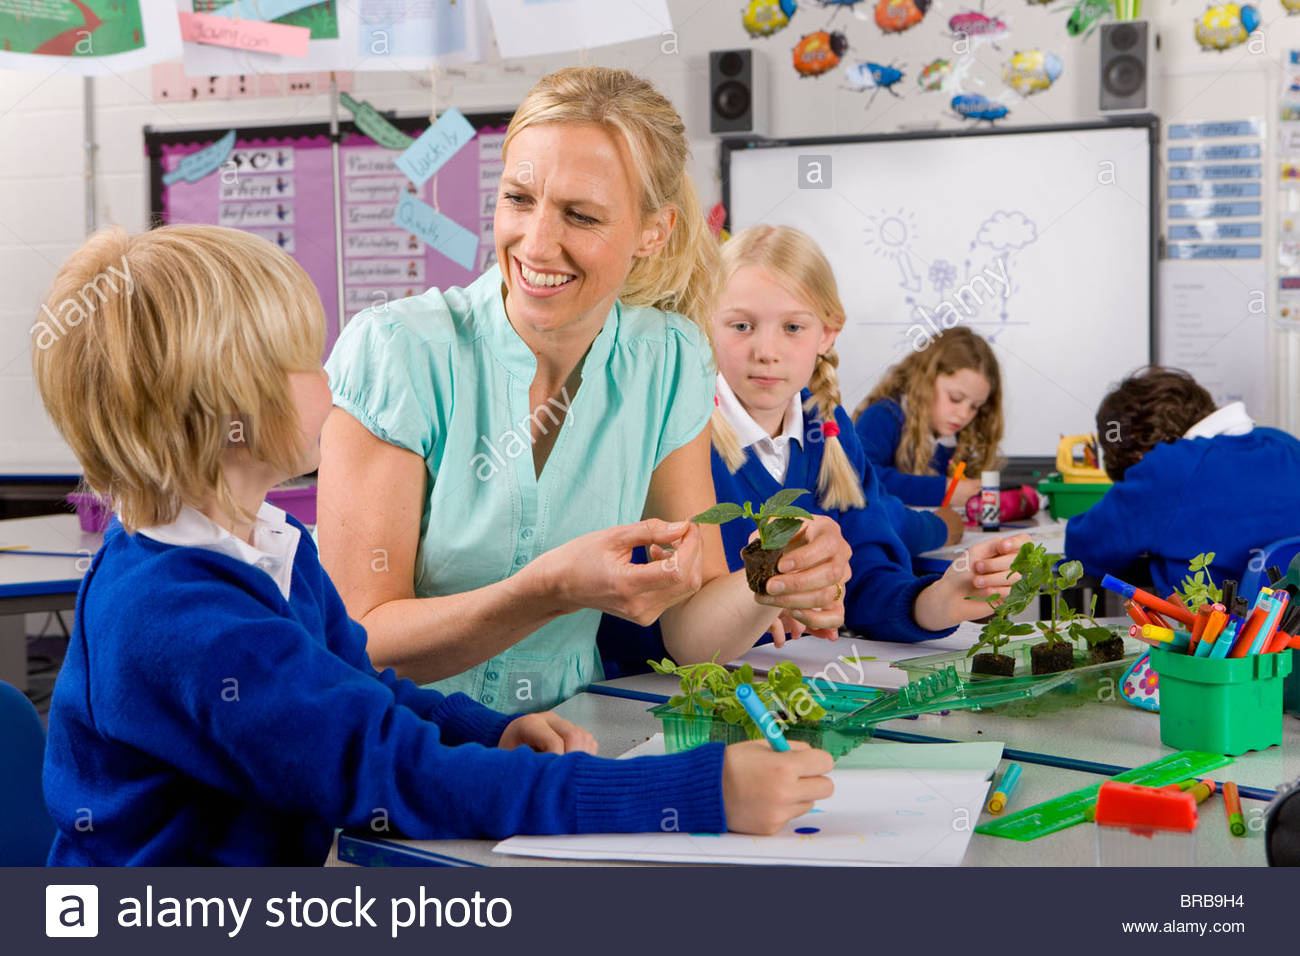 Teacher and school children looking at plant seedlings in classroom - Stock Image